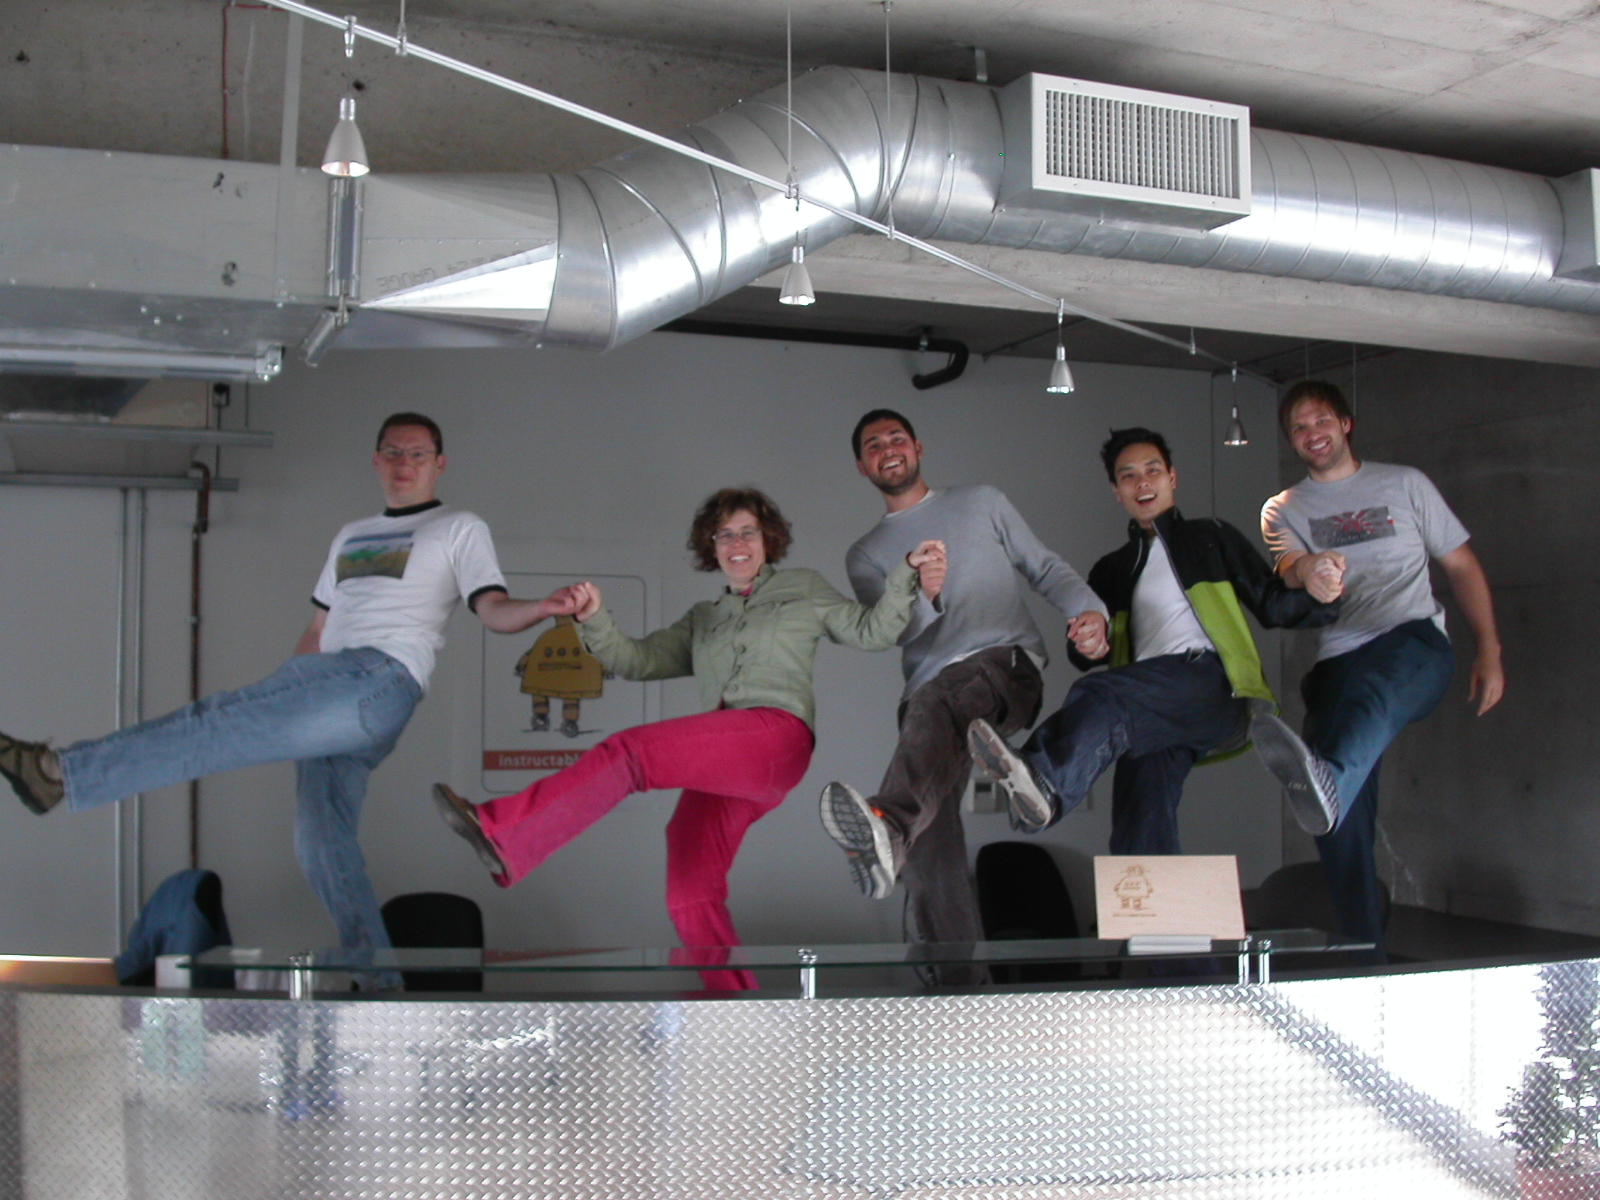 How to party at Instructables when the CEO is out of the office